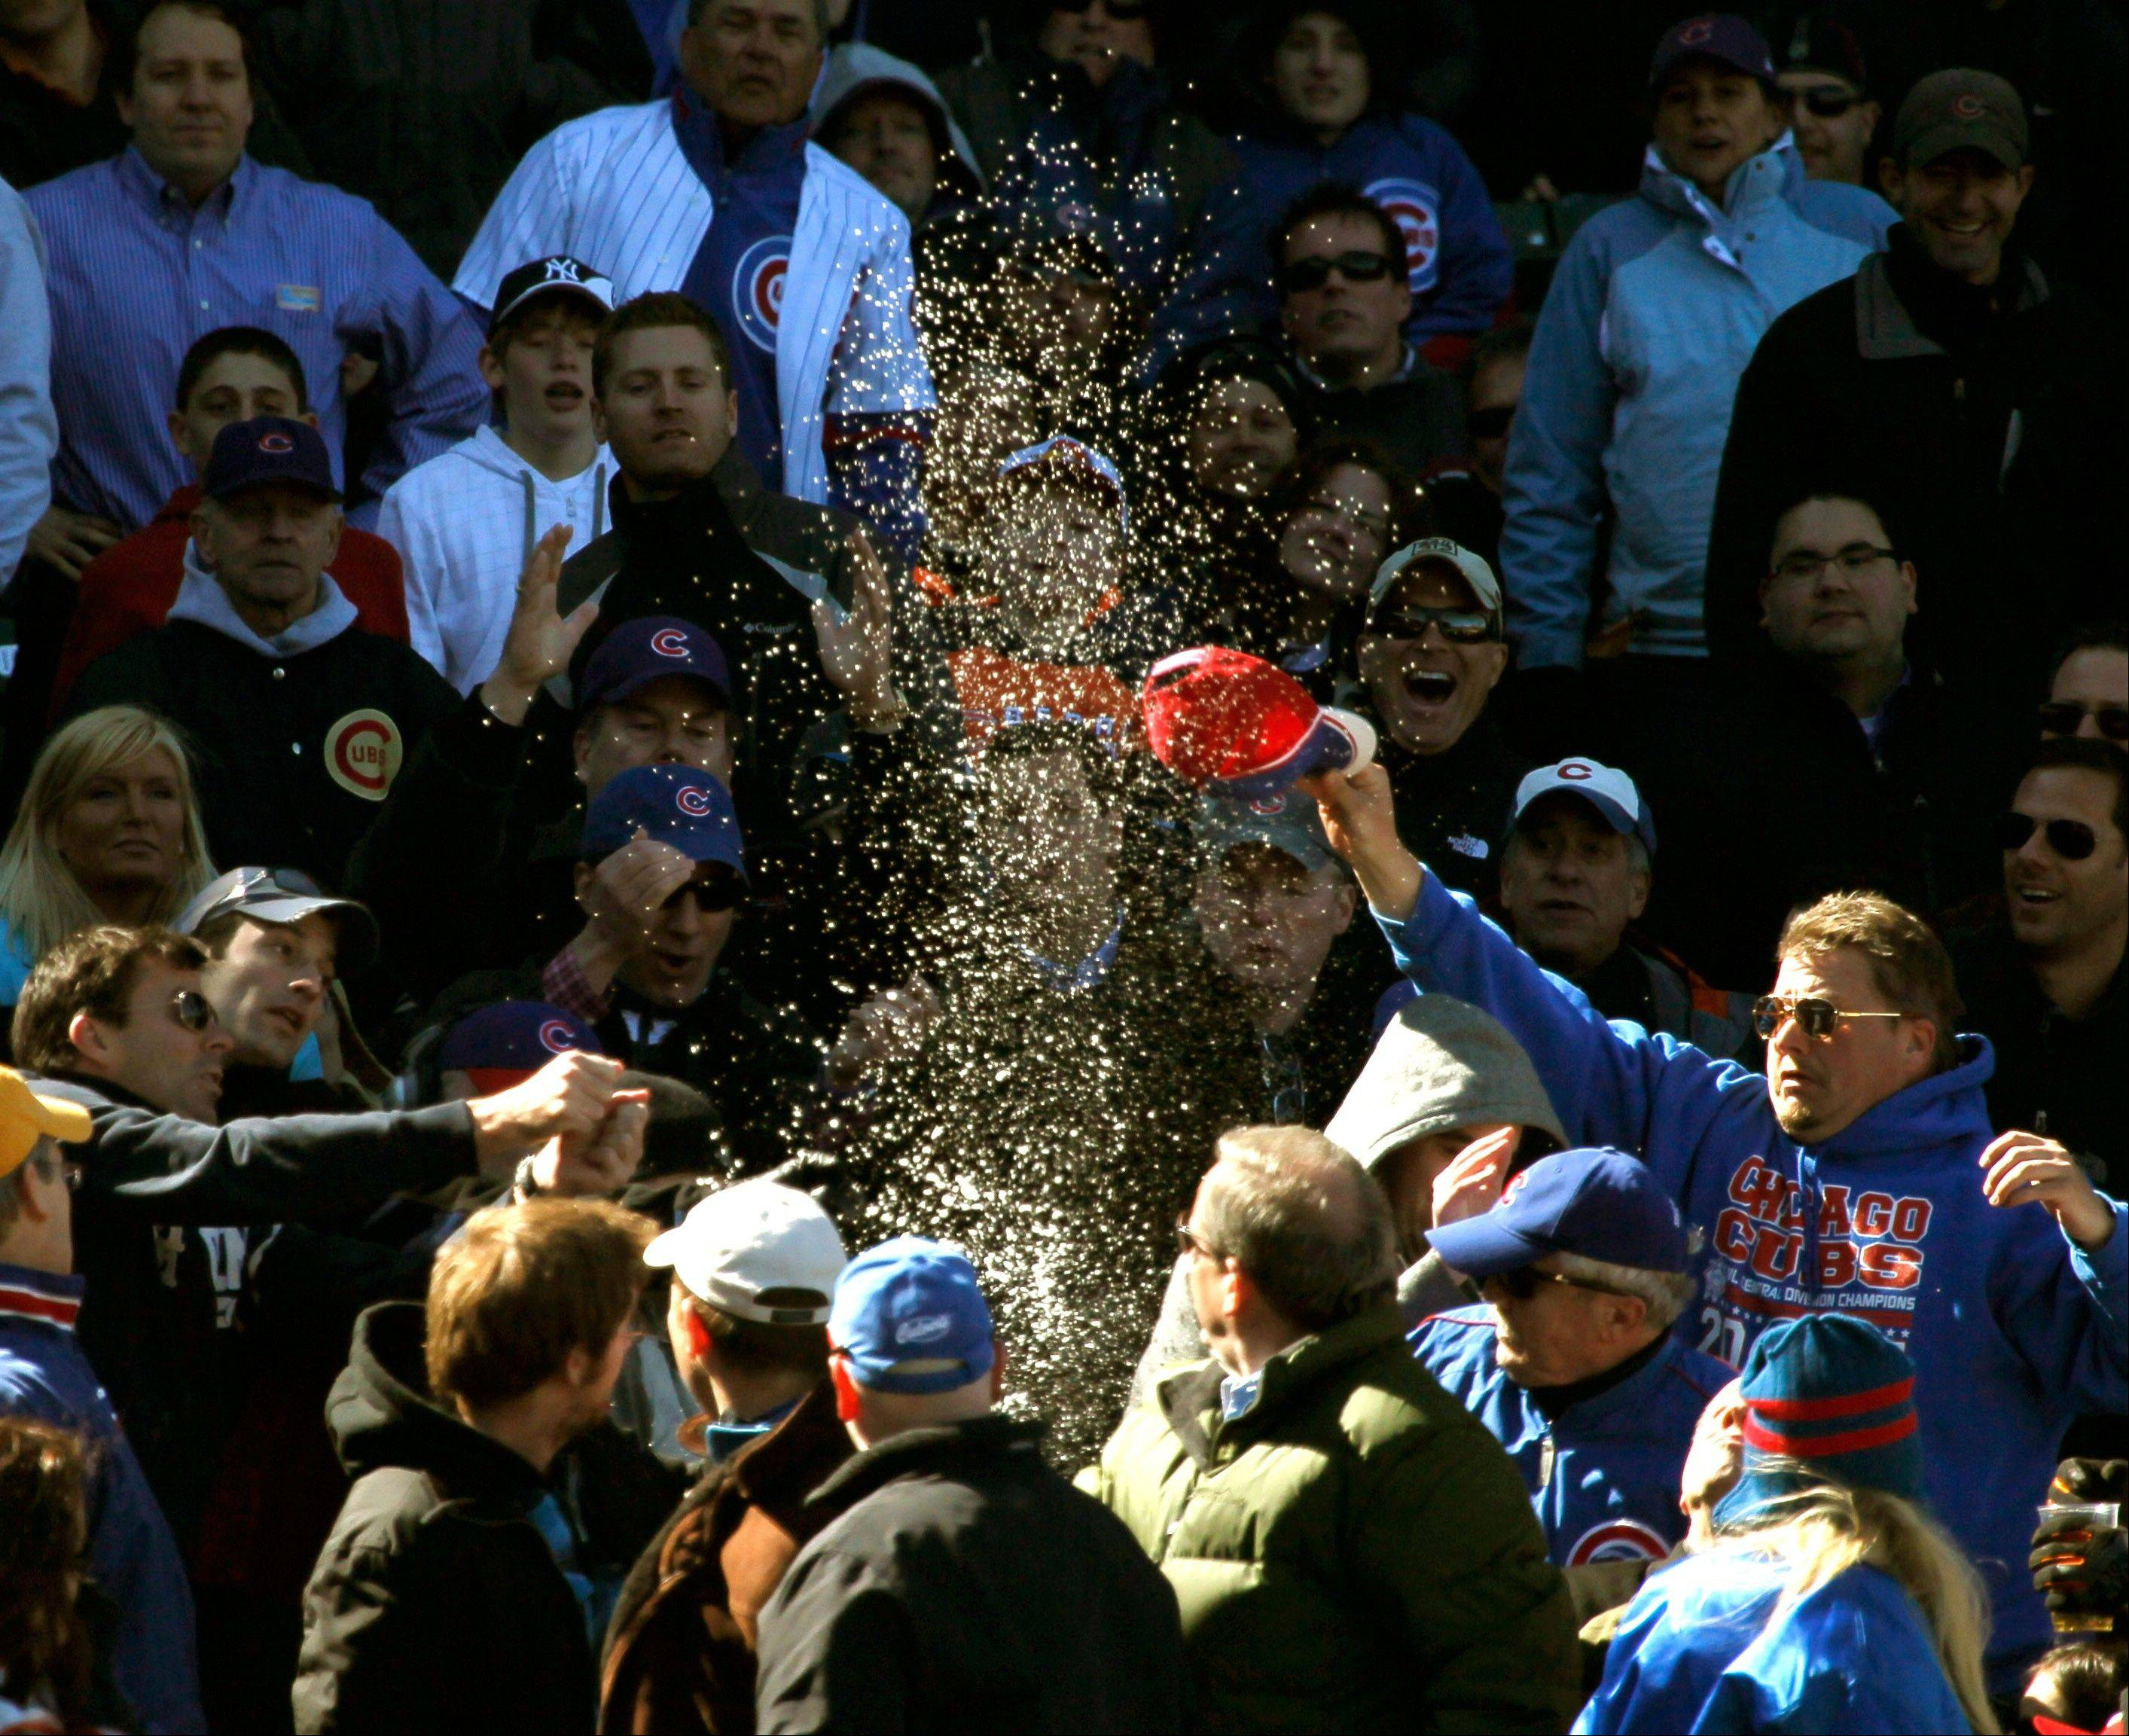 Baseball fans react after a foul ball hit by Chicago Cubs' Ian Stewart, off a pitch from Washington Nationals starting pitcher Stephen Strasburg, lands in a full beverage cup during the sixth inning of a baseball game, Thursday, April 5, 2012, in Chicago.